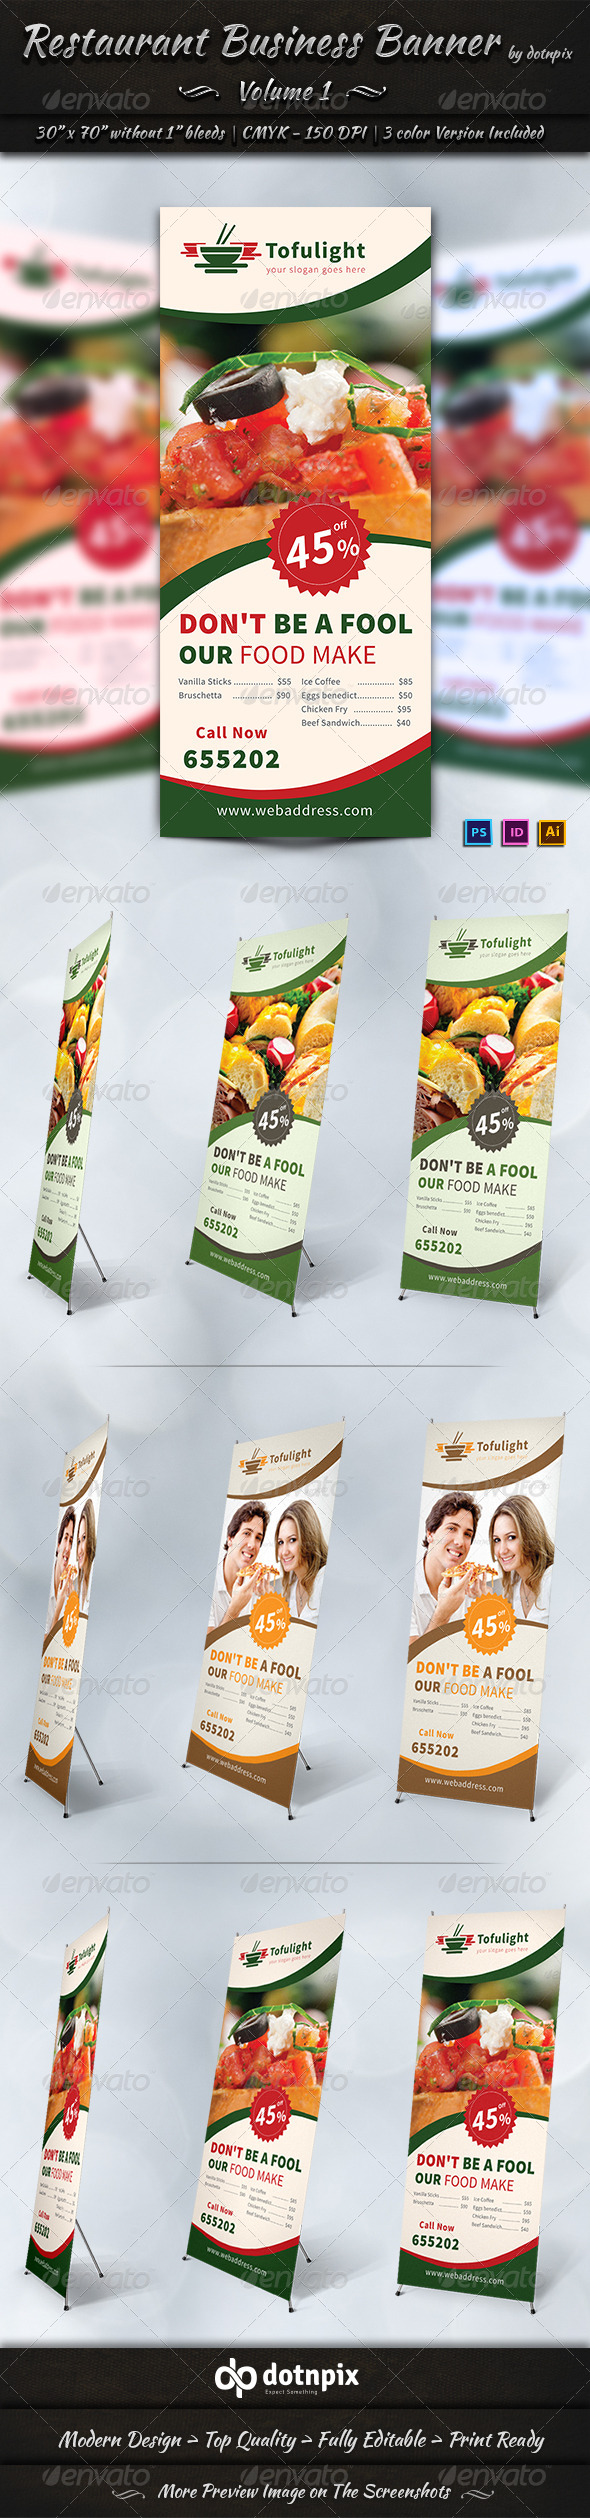 GraphicRiver Restaurant Business Banner Volume 1 7204111